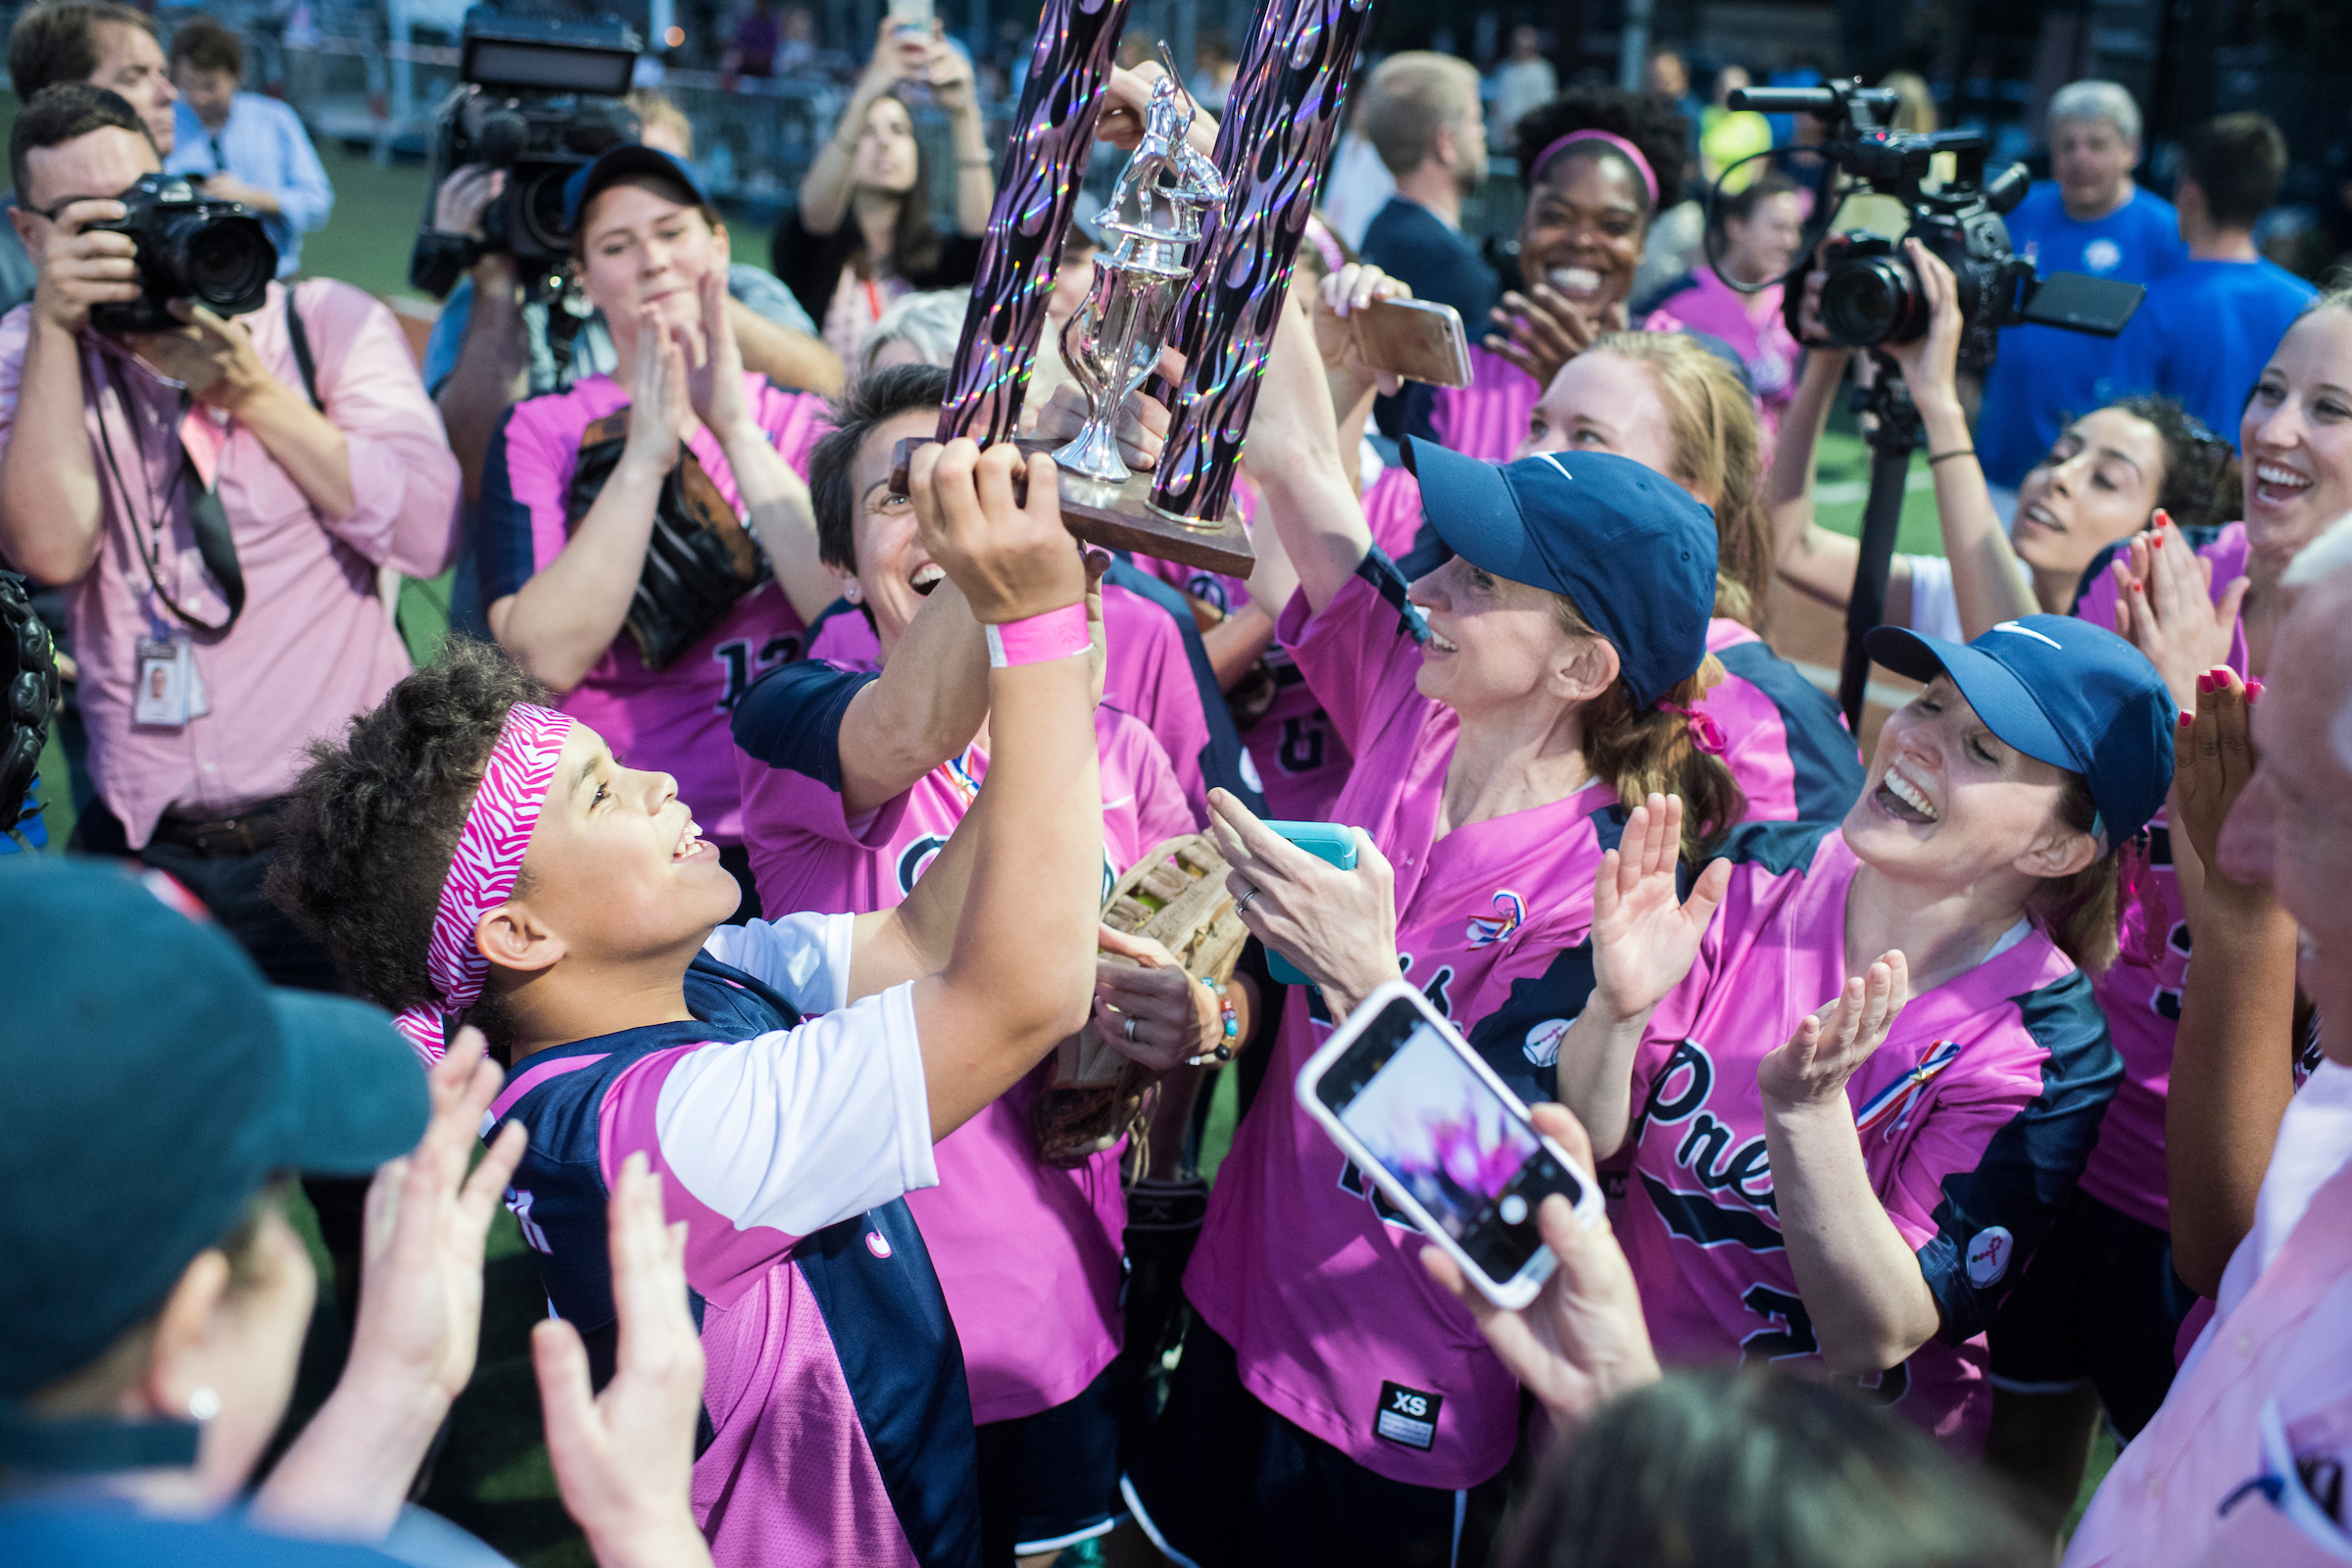 UNITED STATES - JUNE 21: The press team celebrates a 2-1 victory in the Congressional Women's Softball game that pits Congresswomen against female journalists at Watkins Recreation Center on Capitol Hill, June 21, 2017. The game benefits the Young Survival Coalition that helps young women with breast cancer. (Photo By Tom Williams/CQ Roll Call)